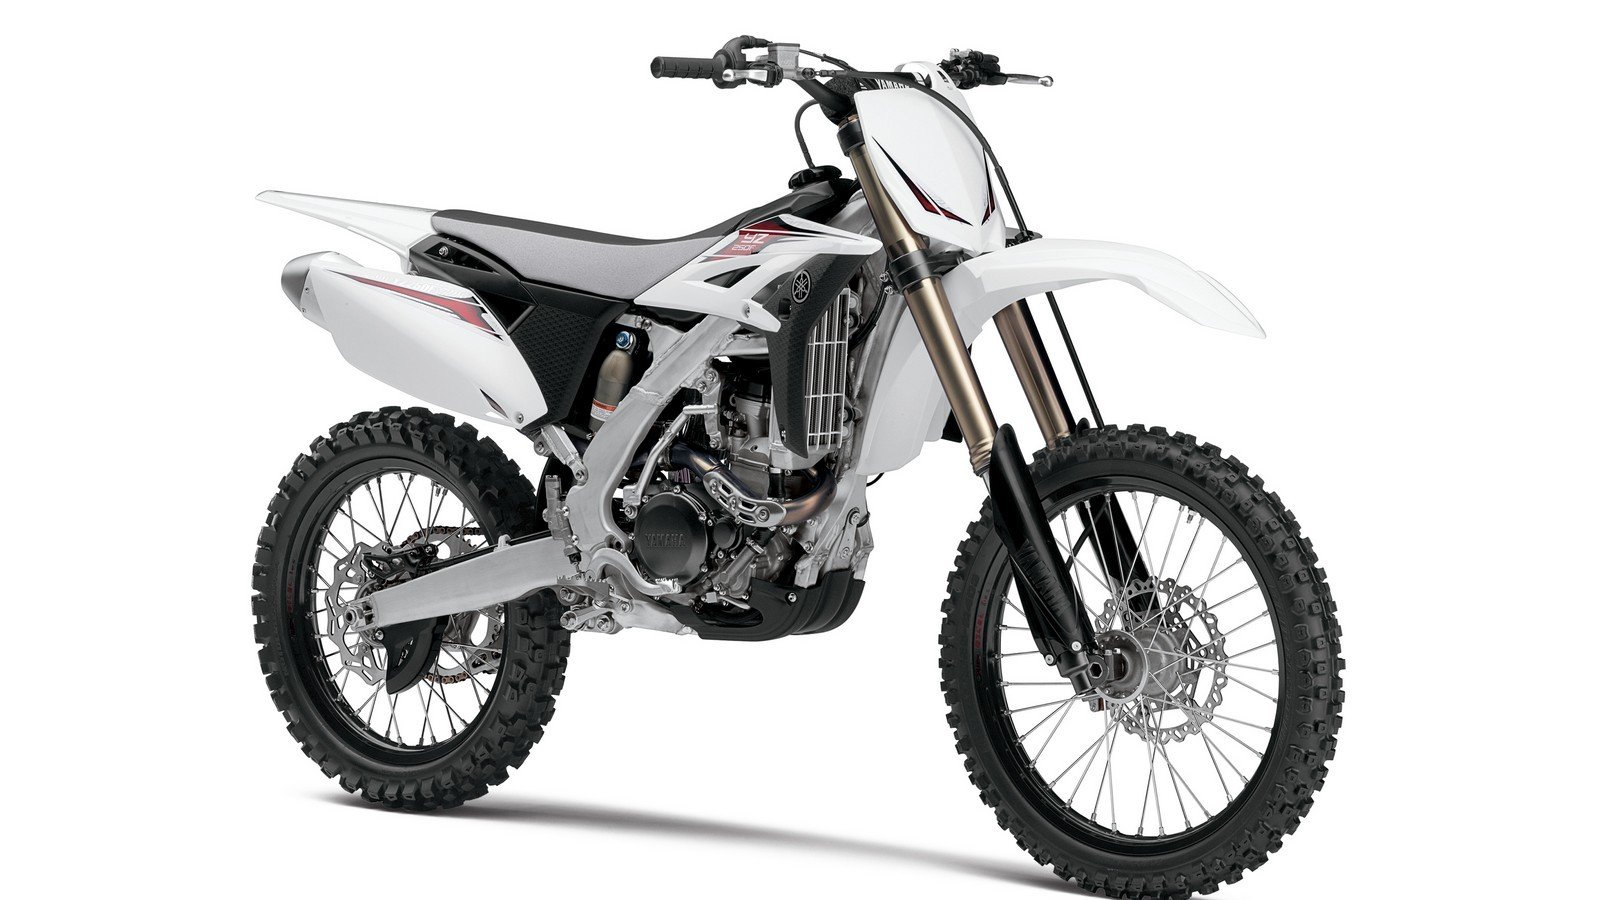 2013 yamaha yz250f review top speed for Yamaha yzf 250f